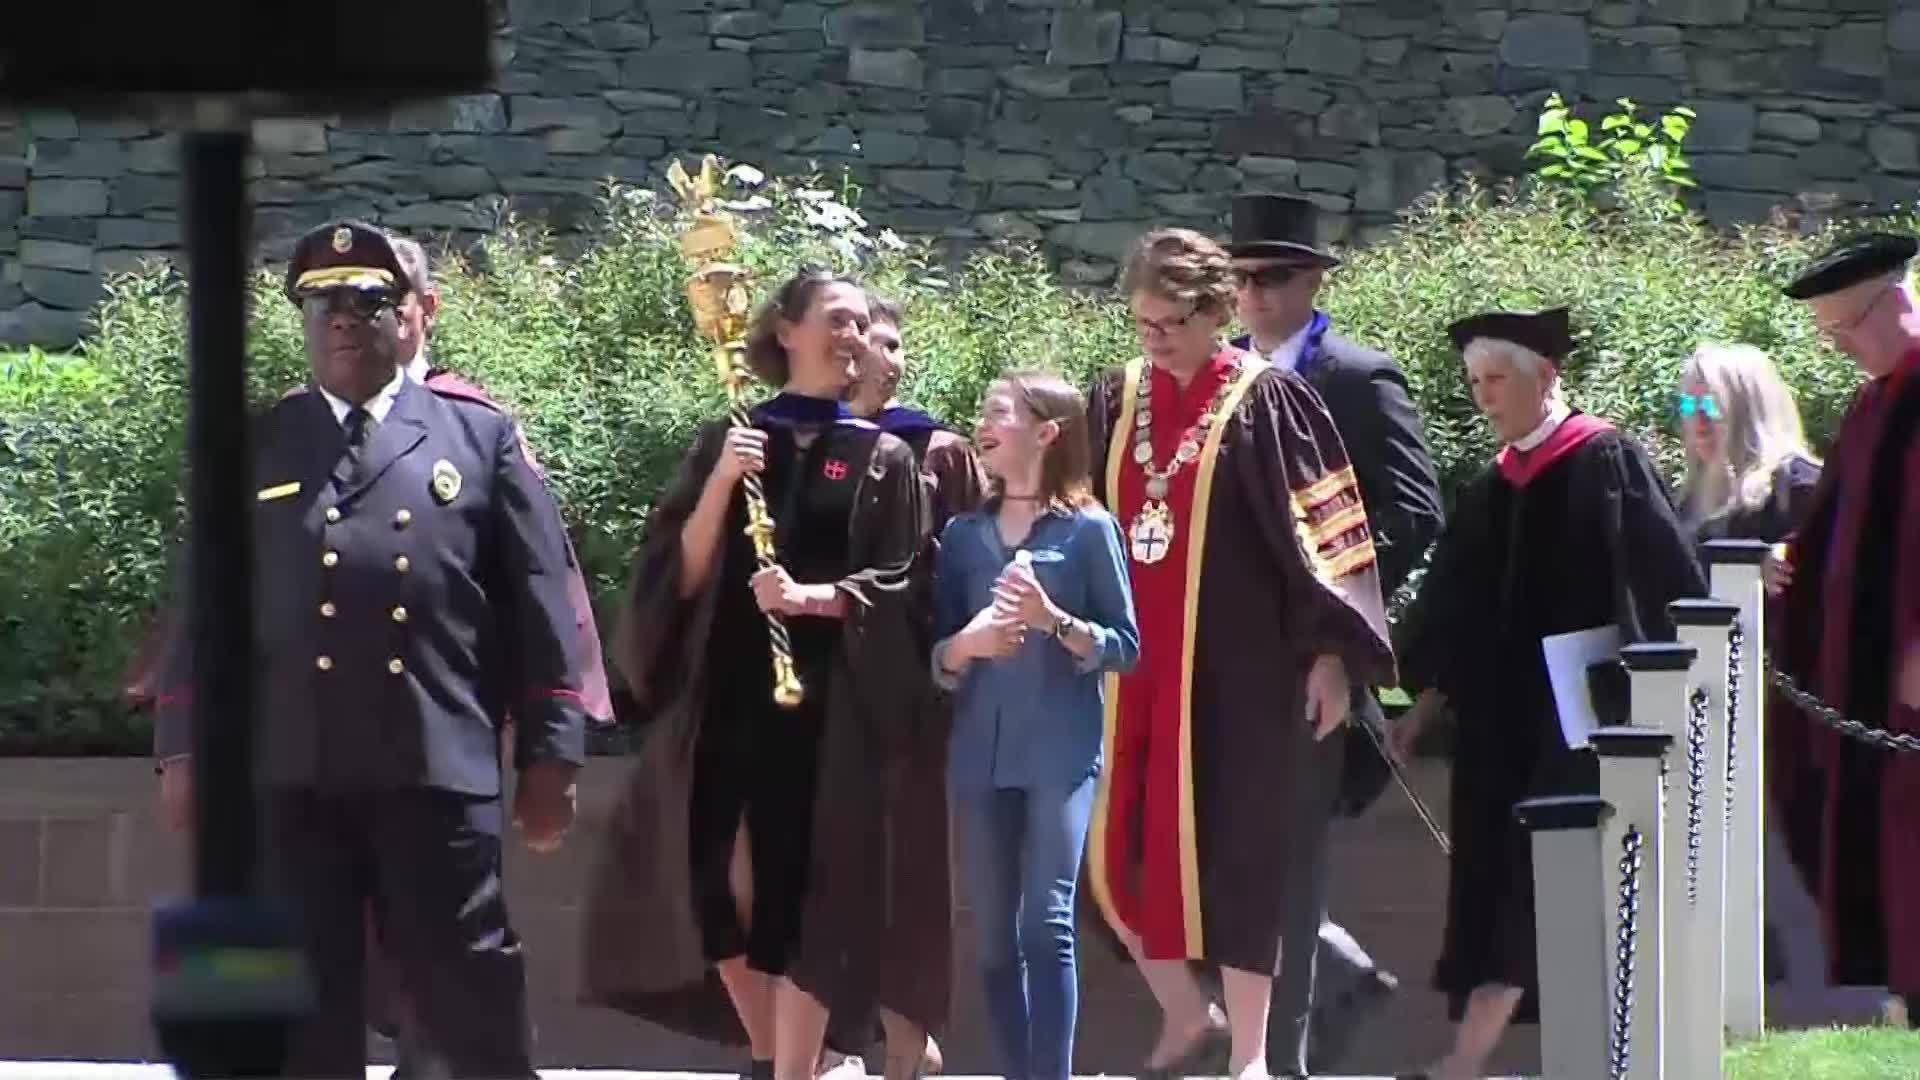 VIDEO NOW: Brown University's 251st Commencement held Sunday